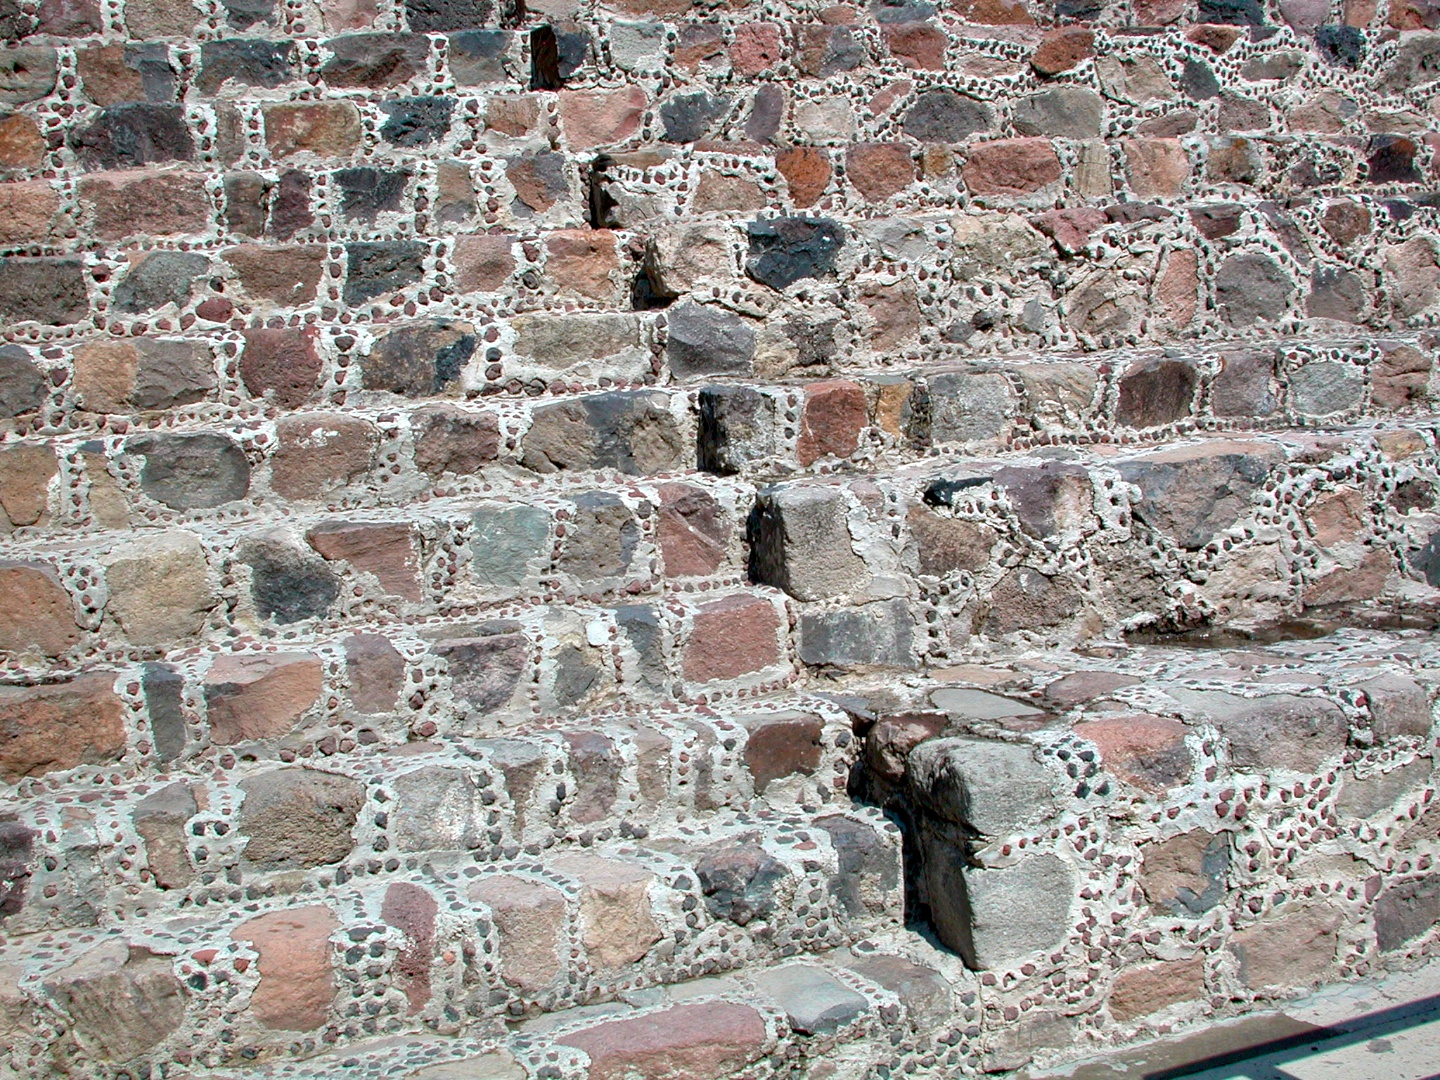 Teotihuacán, Mexico 2002